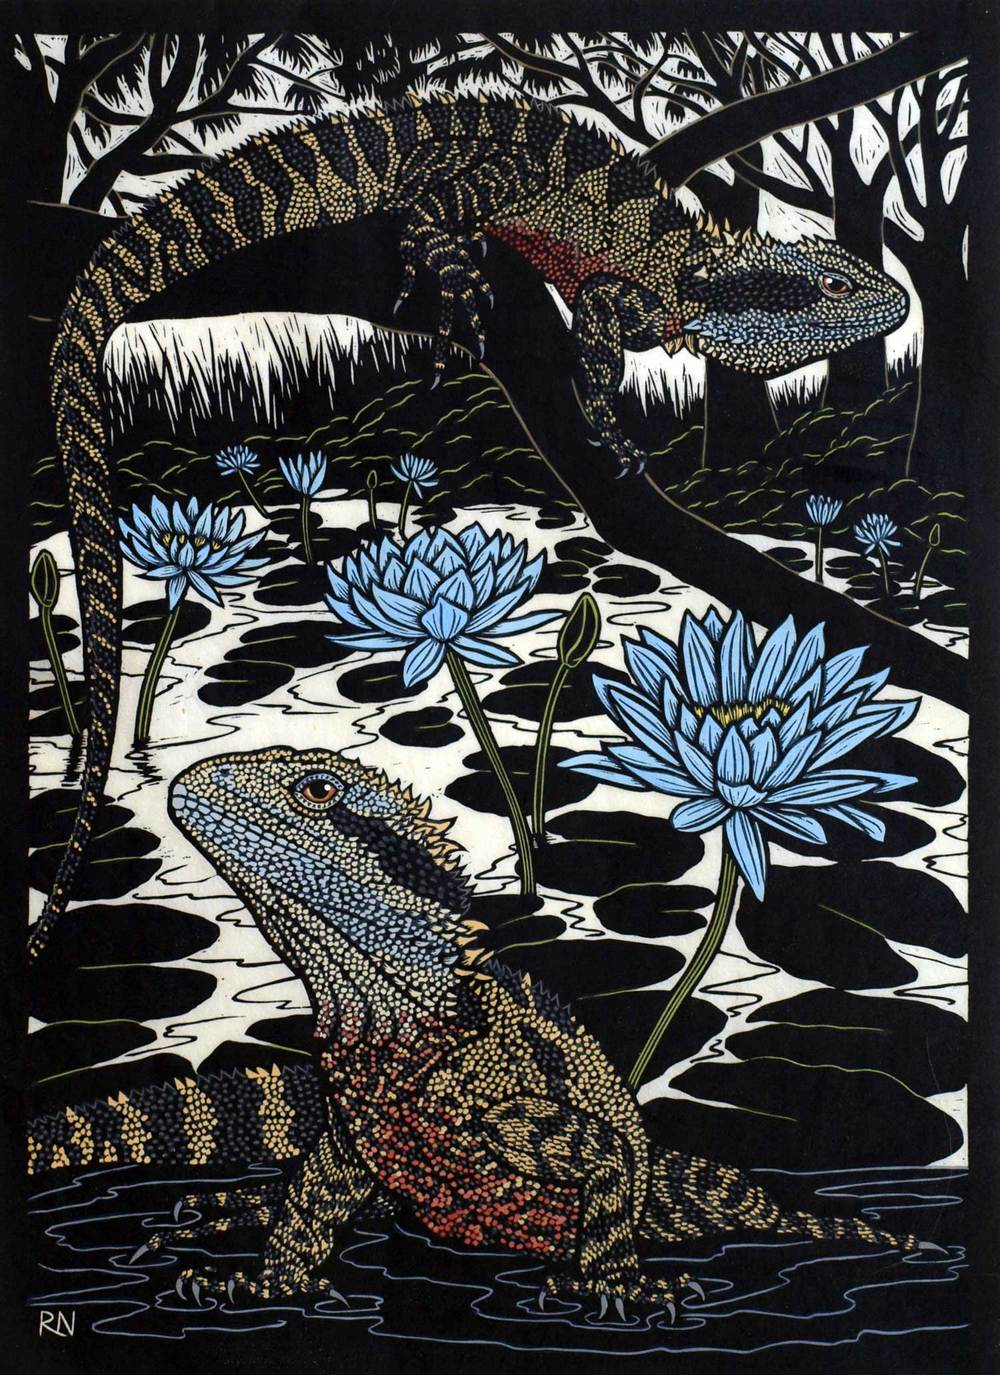 water-dragon-linocut-rachel-newling.jpg